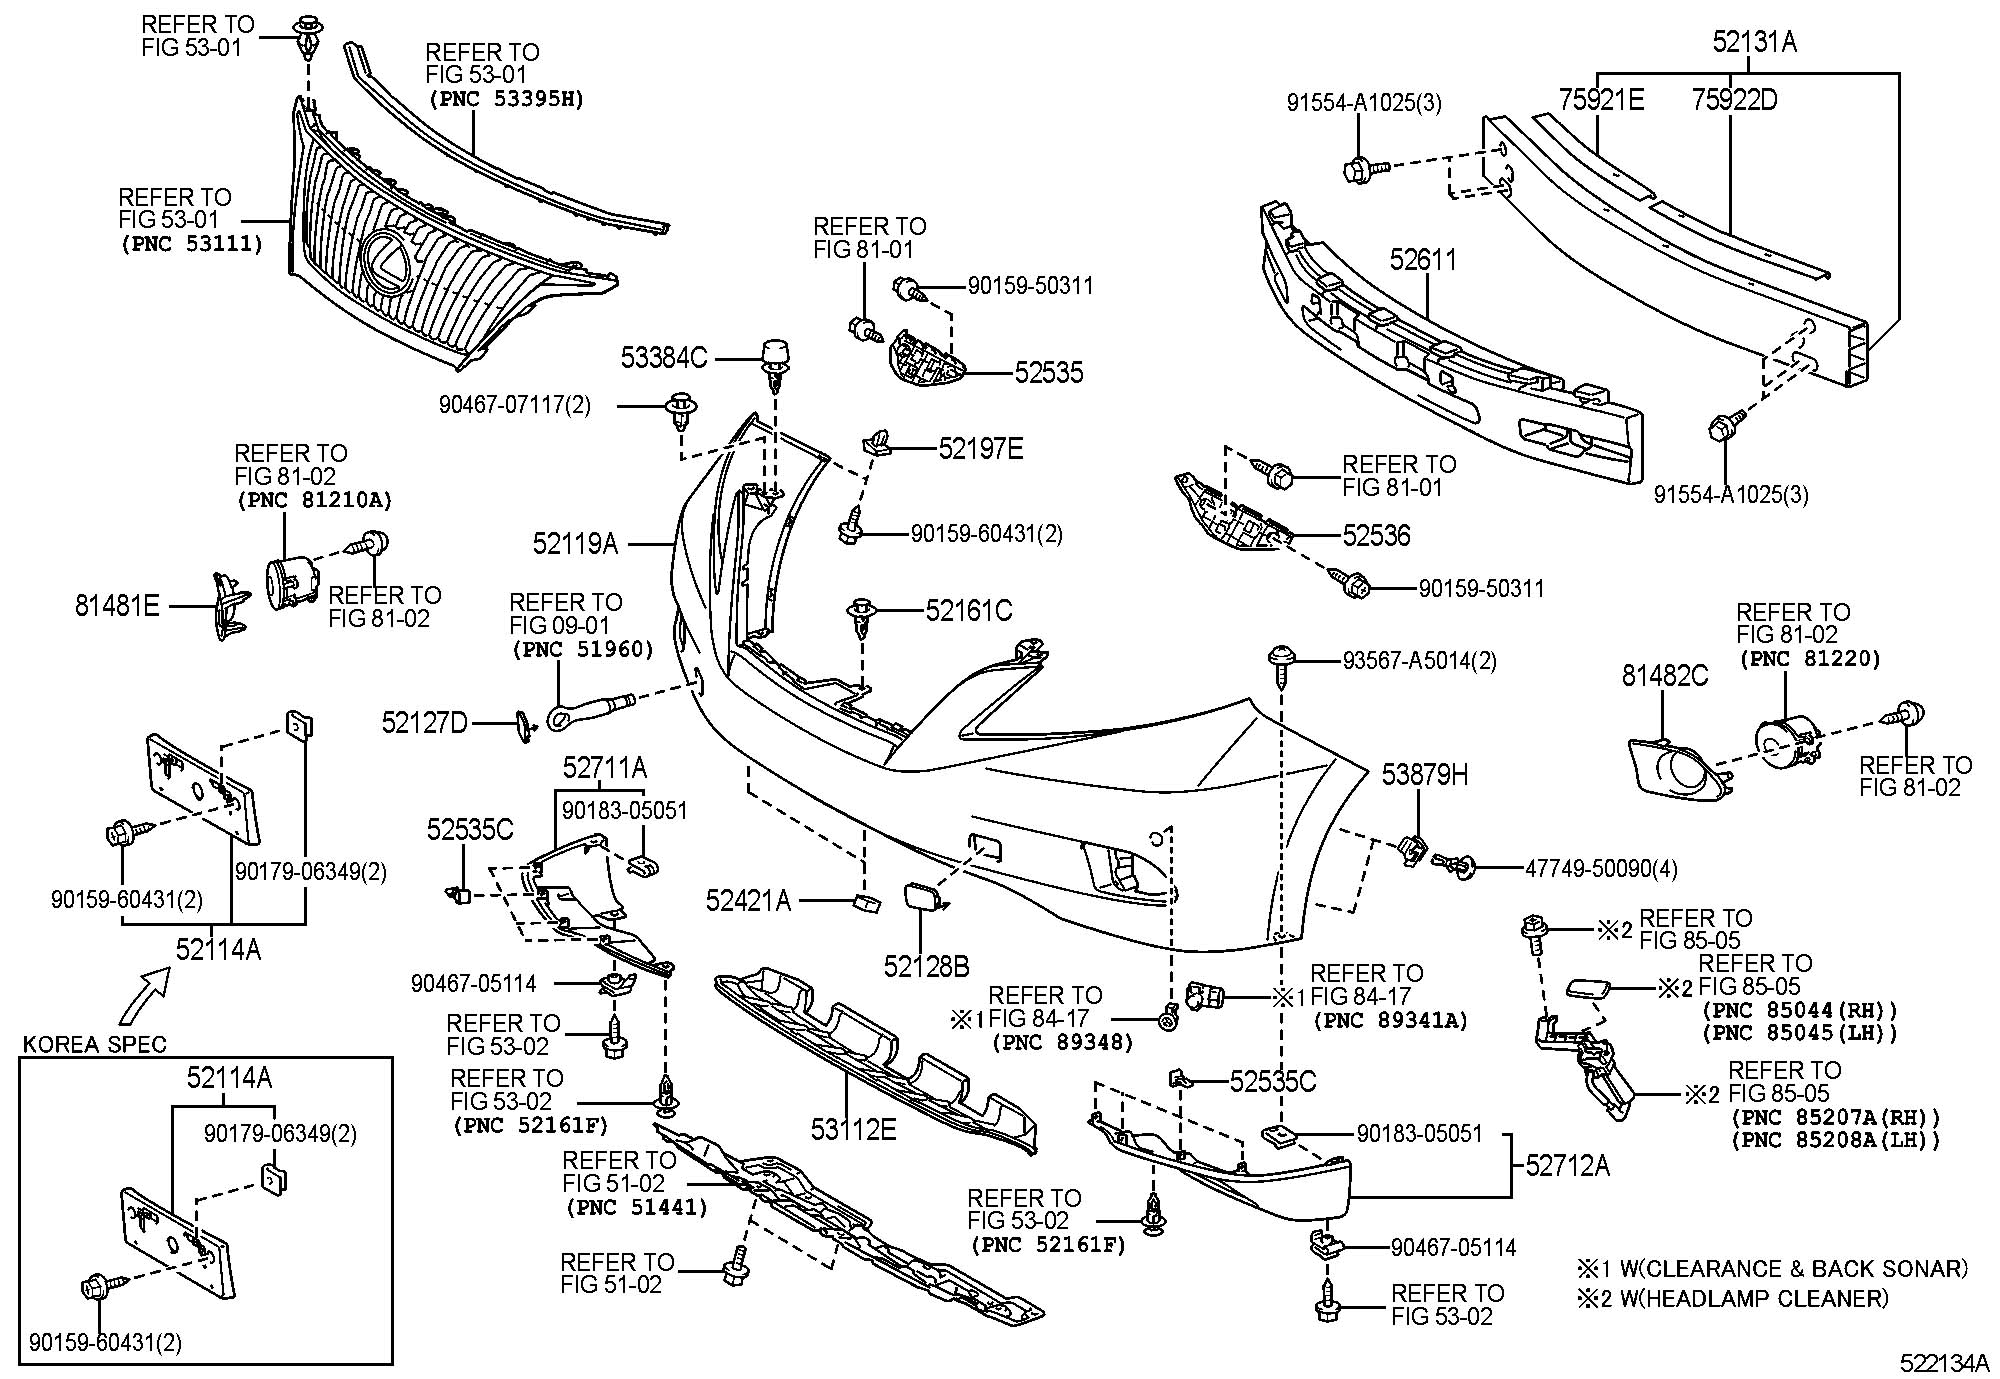 1992 Yamaha Outboard Engine Diagram as well 2000 Yamaha Warrior 350 Wiring Diagram furthermore Volvo C70 Engine Diagram moreover Kawasaki Zx6r Wiring Diagram furthermore Volvo 2003 S60 Headlight Wiring Harness. on 2001 yamaha r1 fuse box location